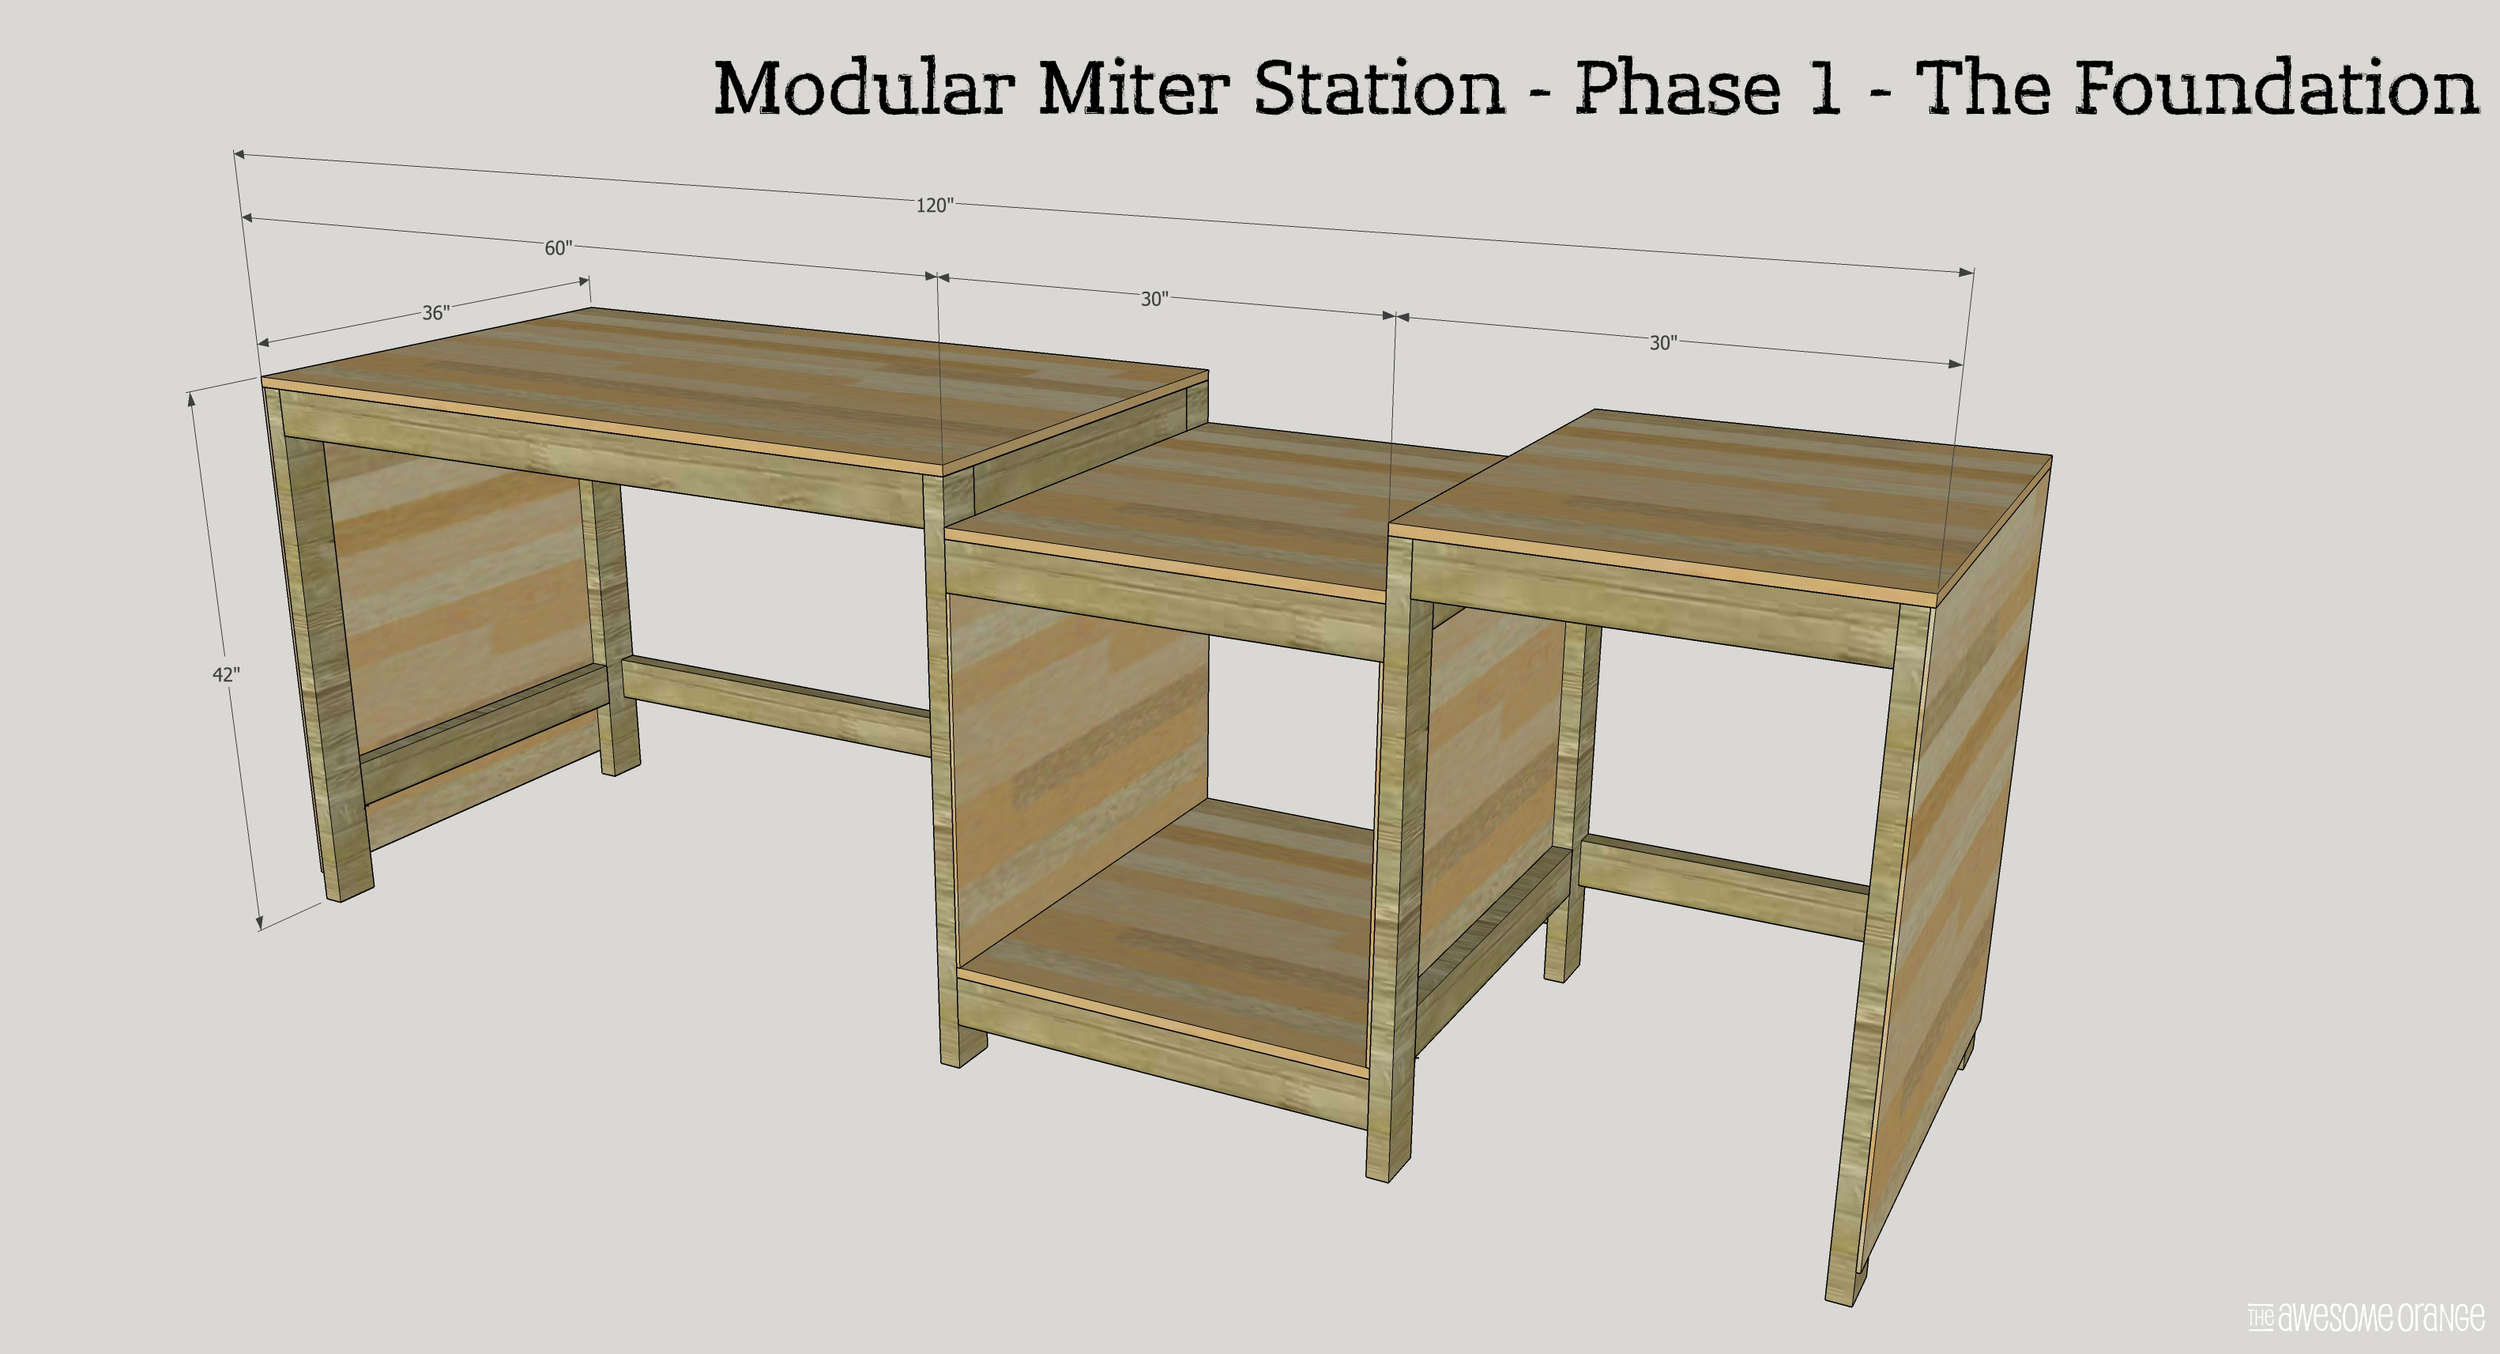 Modular Miter Station - Phase 1 - The Foundation.png